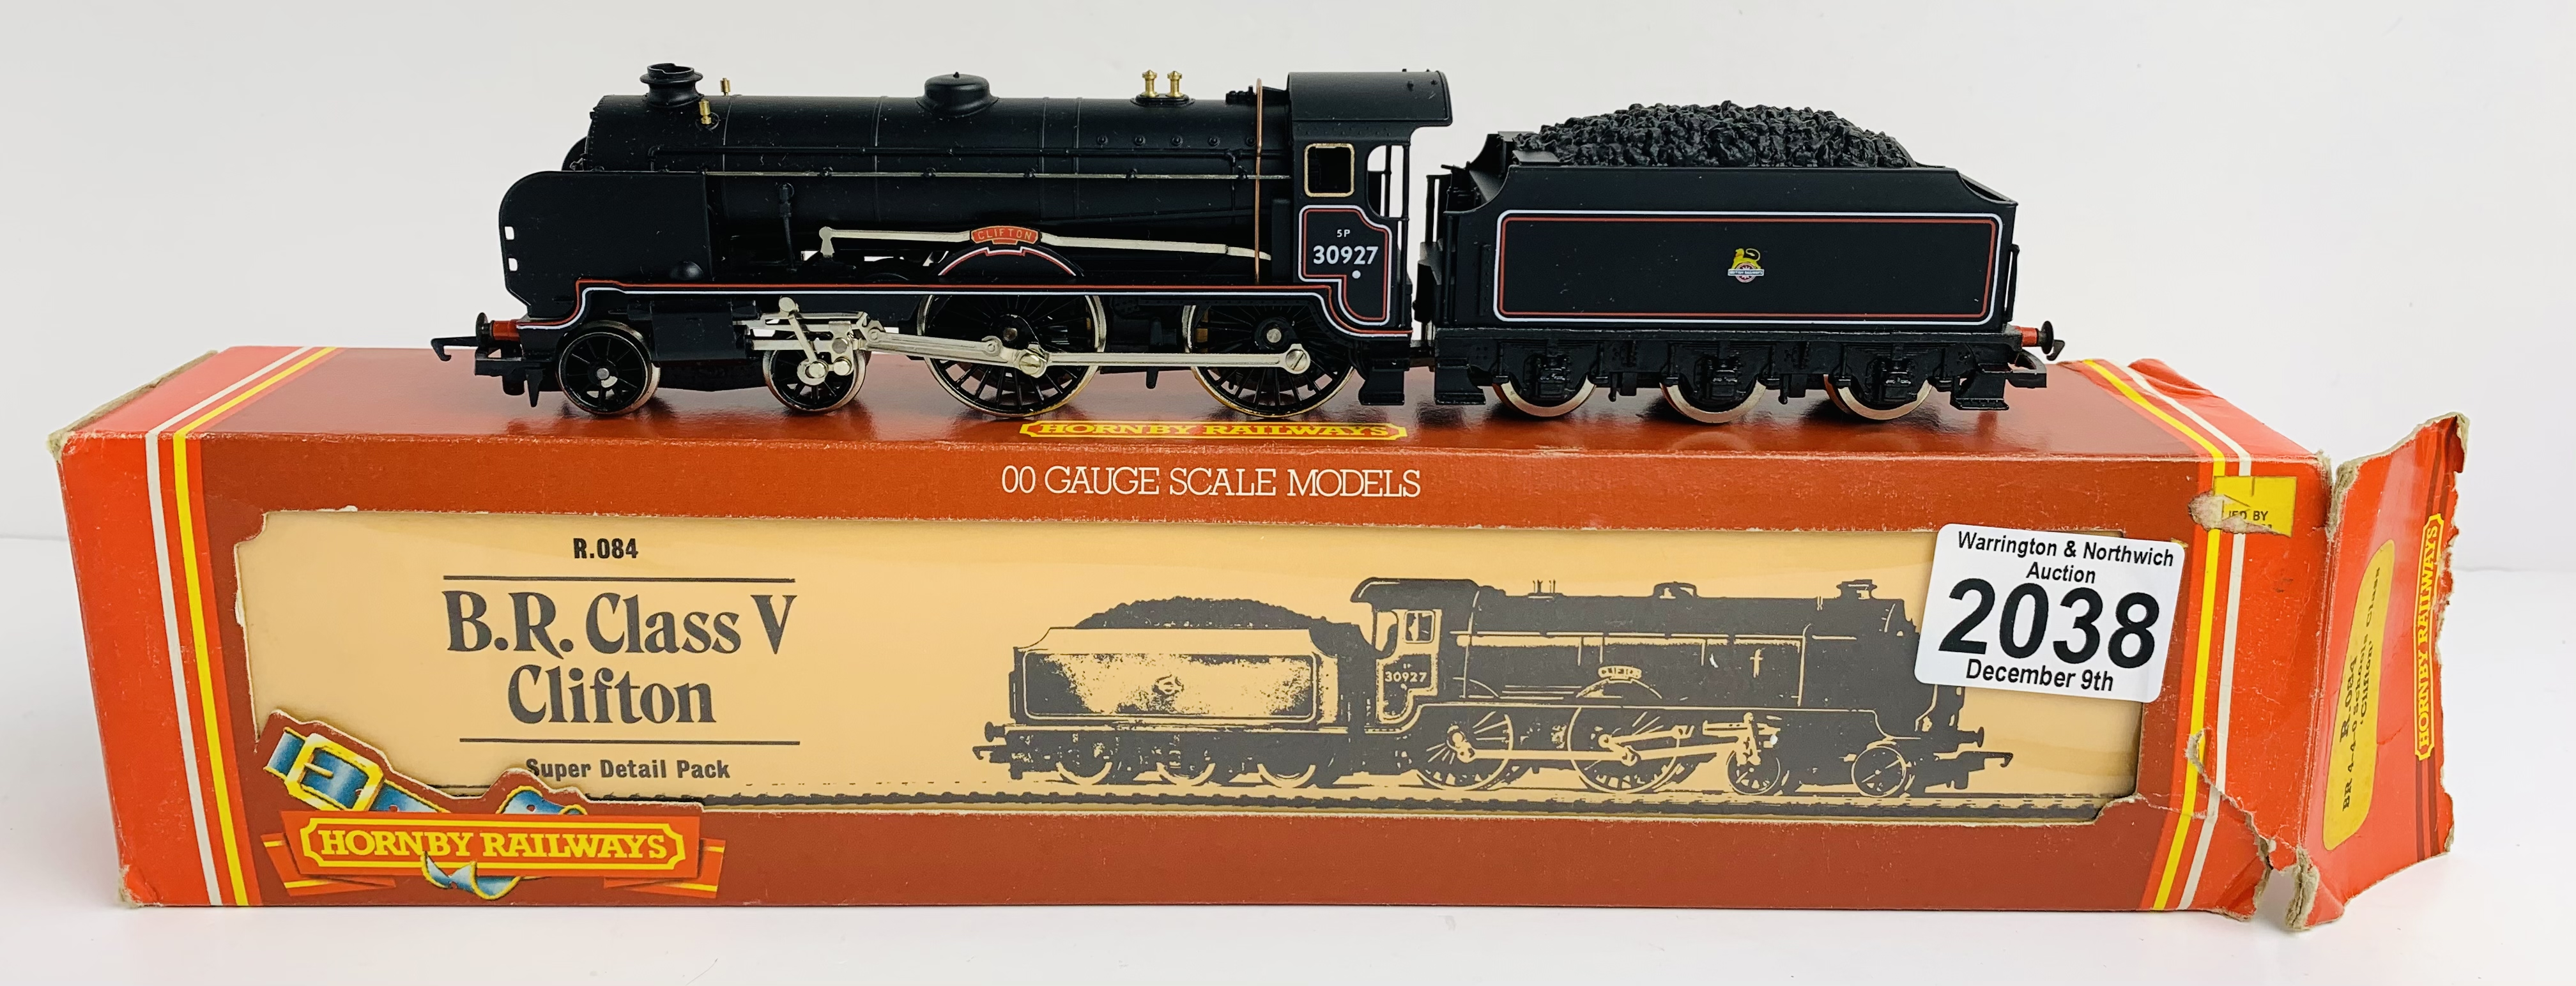 Hornby R084 BR 4-4-0 'Clifton' Schools Class Loco - Boxed P&P Group 1 (£14+VAT for the first lot and